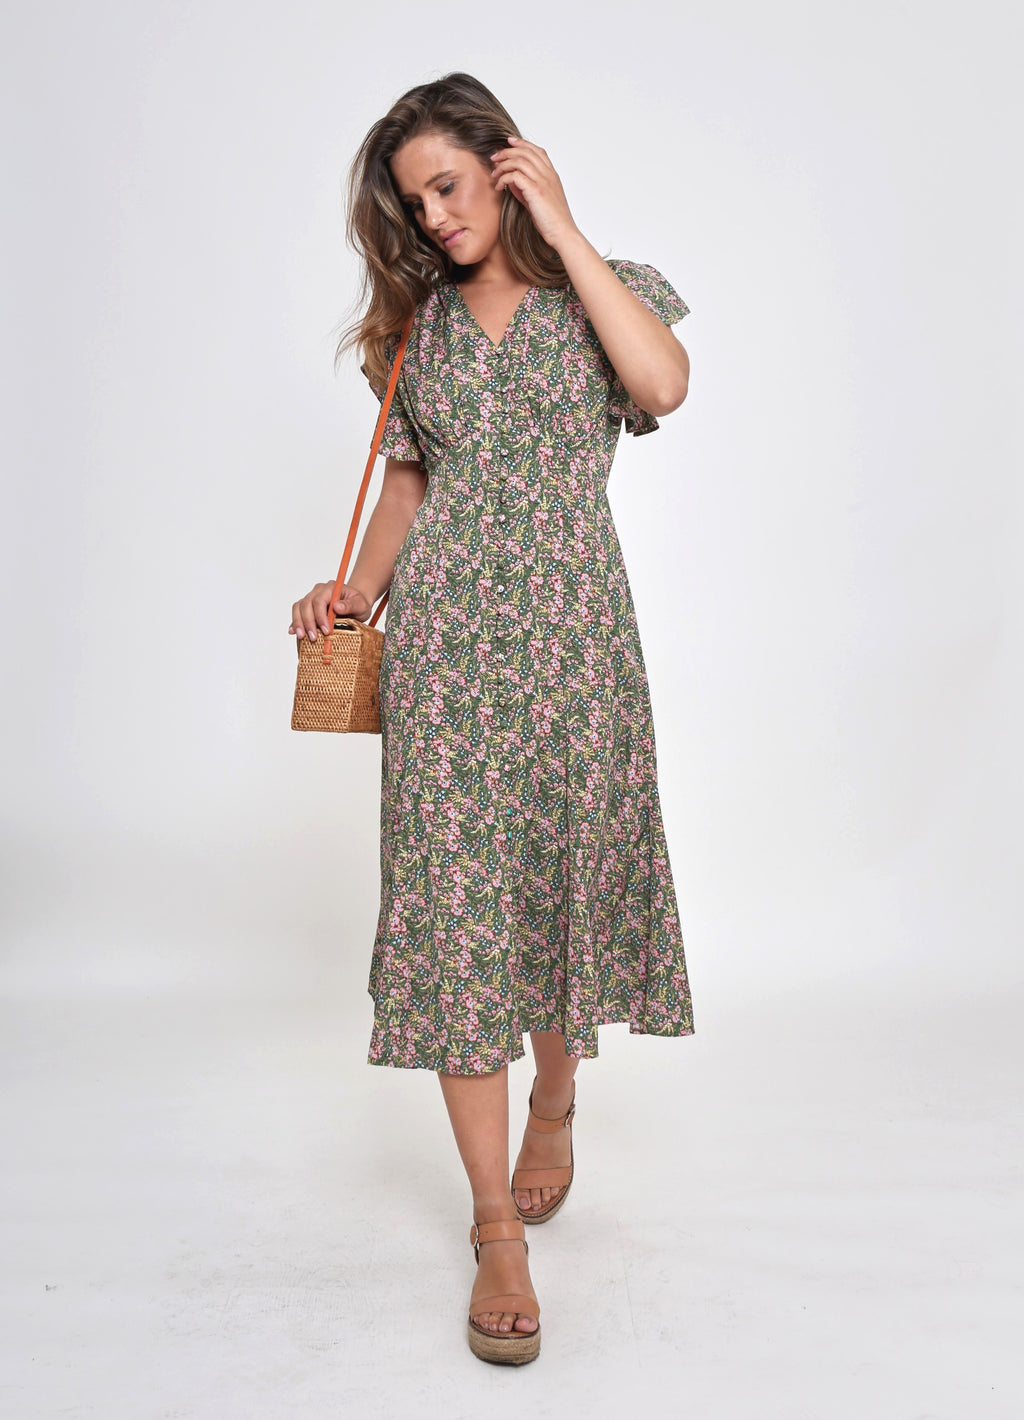 NEW - VERA DRESS - GREEN FLORAL